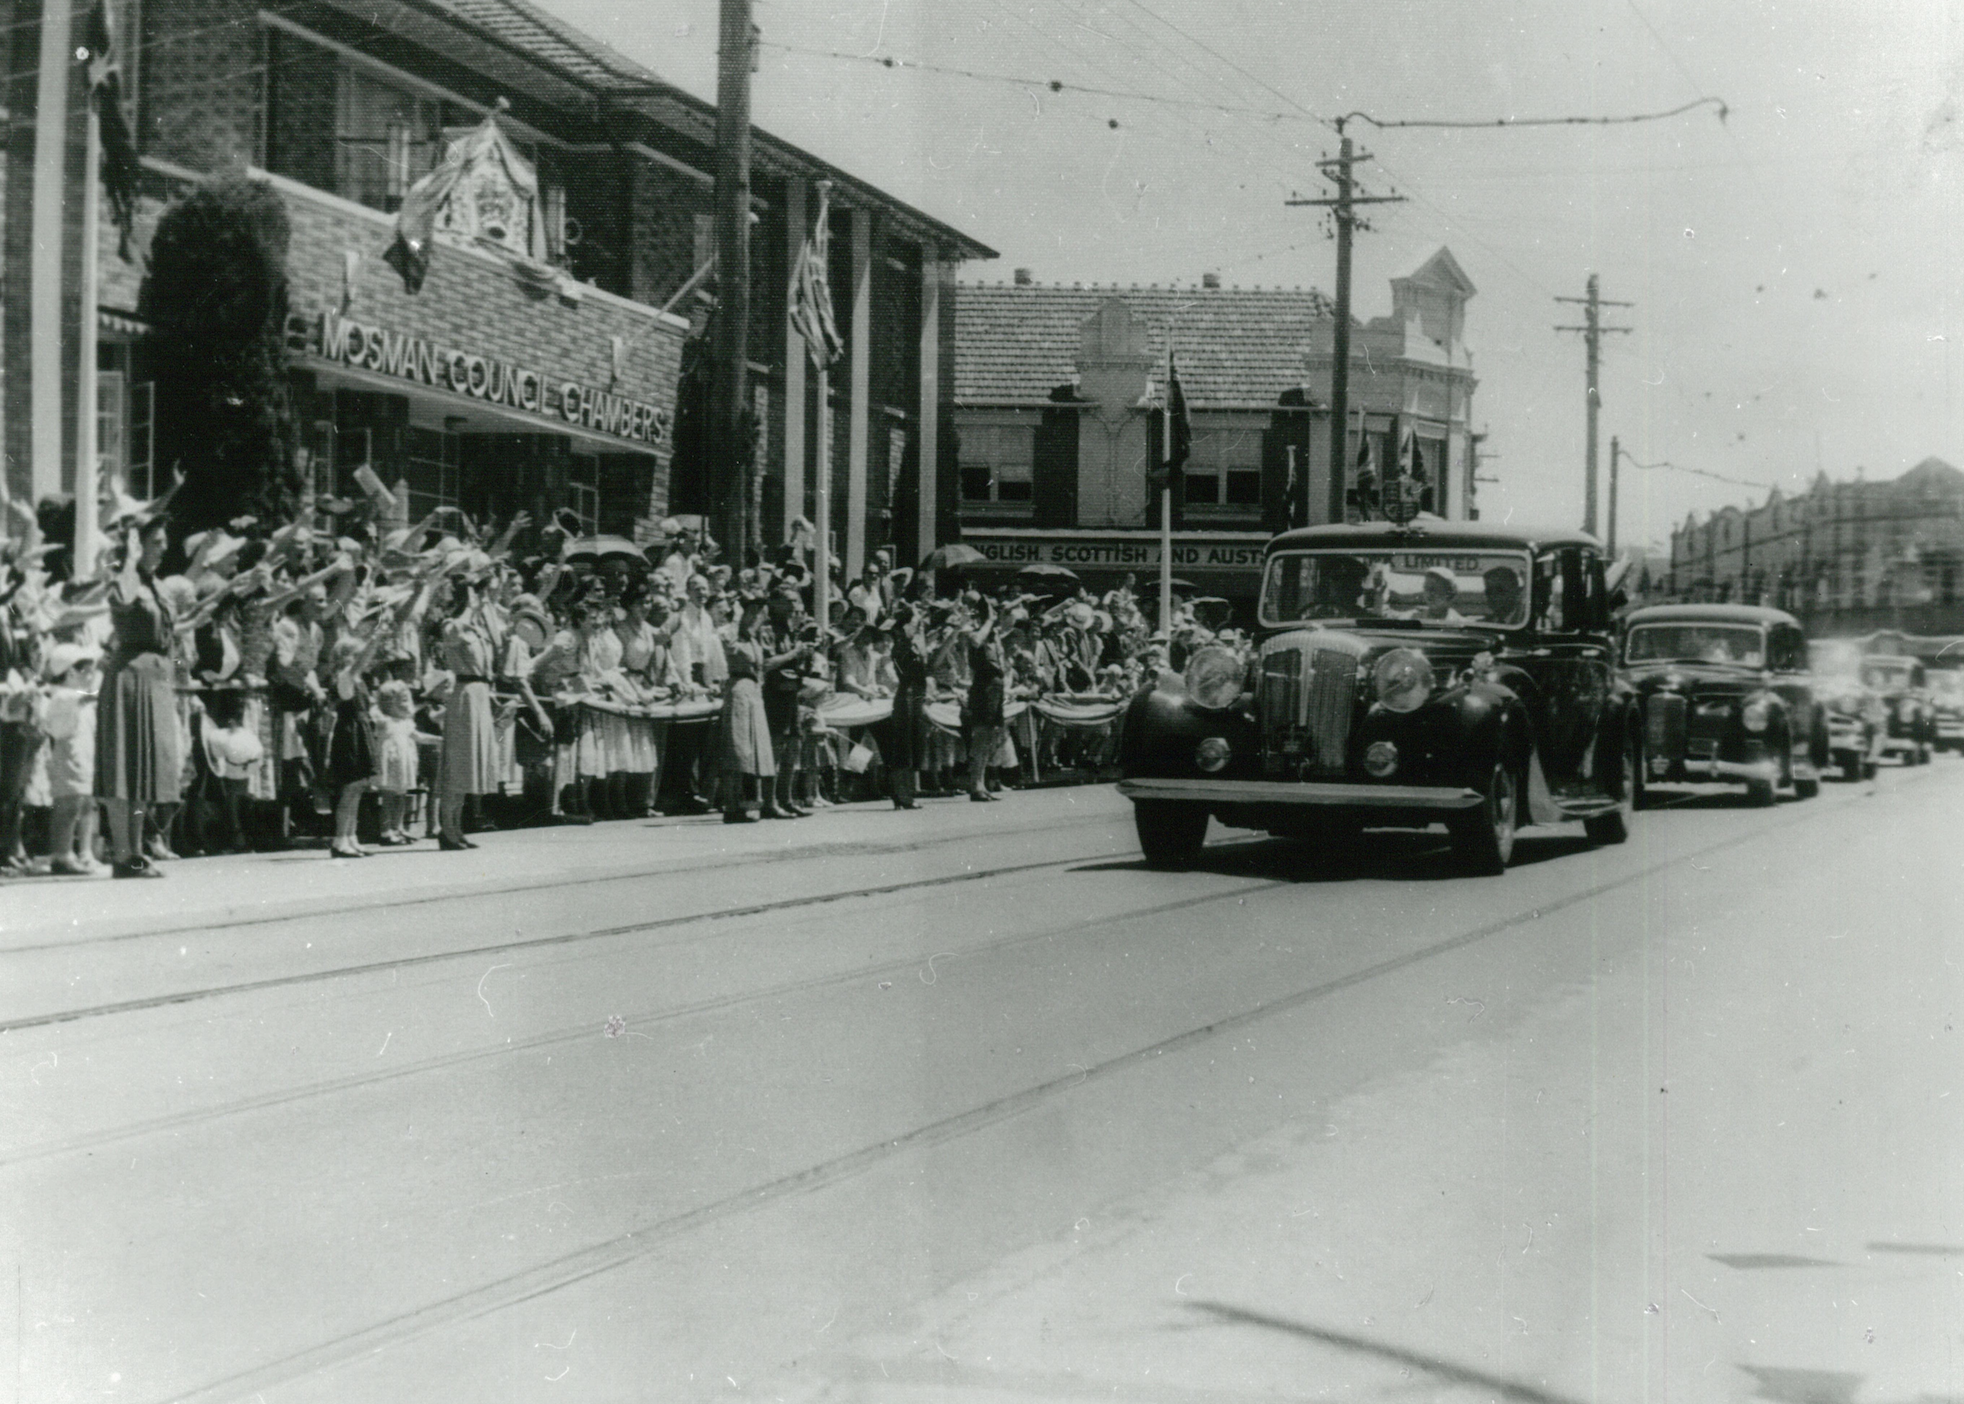 Queen Elizabeth and Prince Philip arrive in Mosman. Feb 1954.